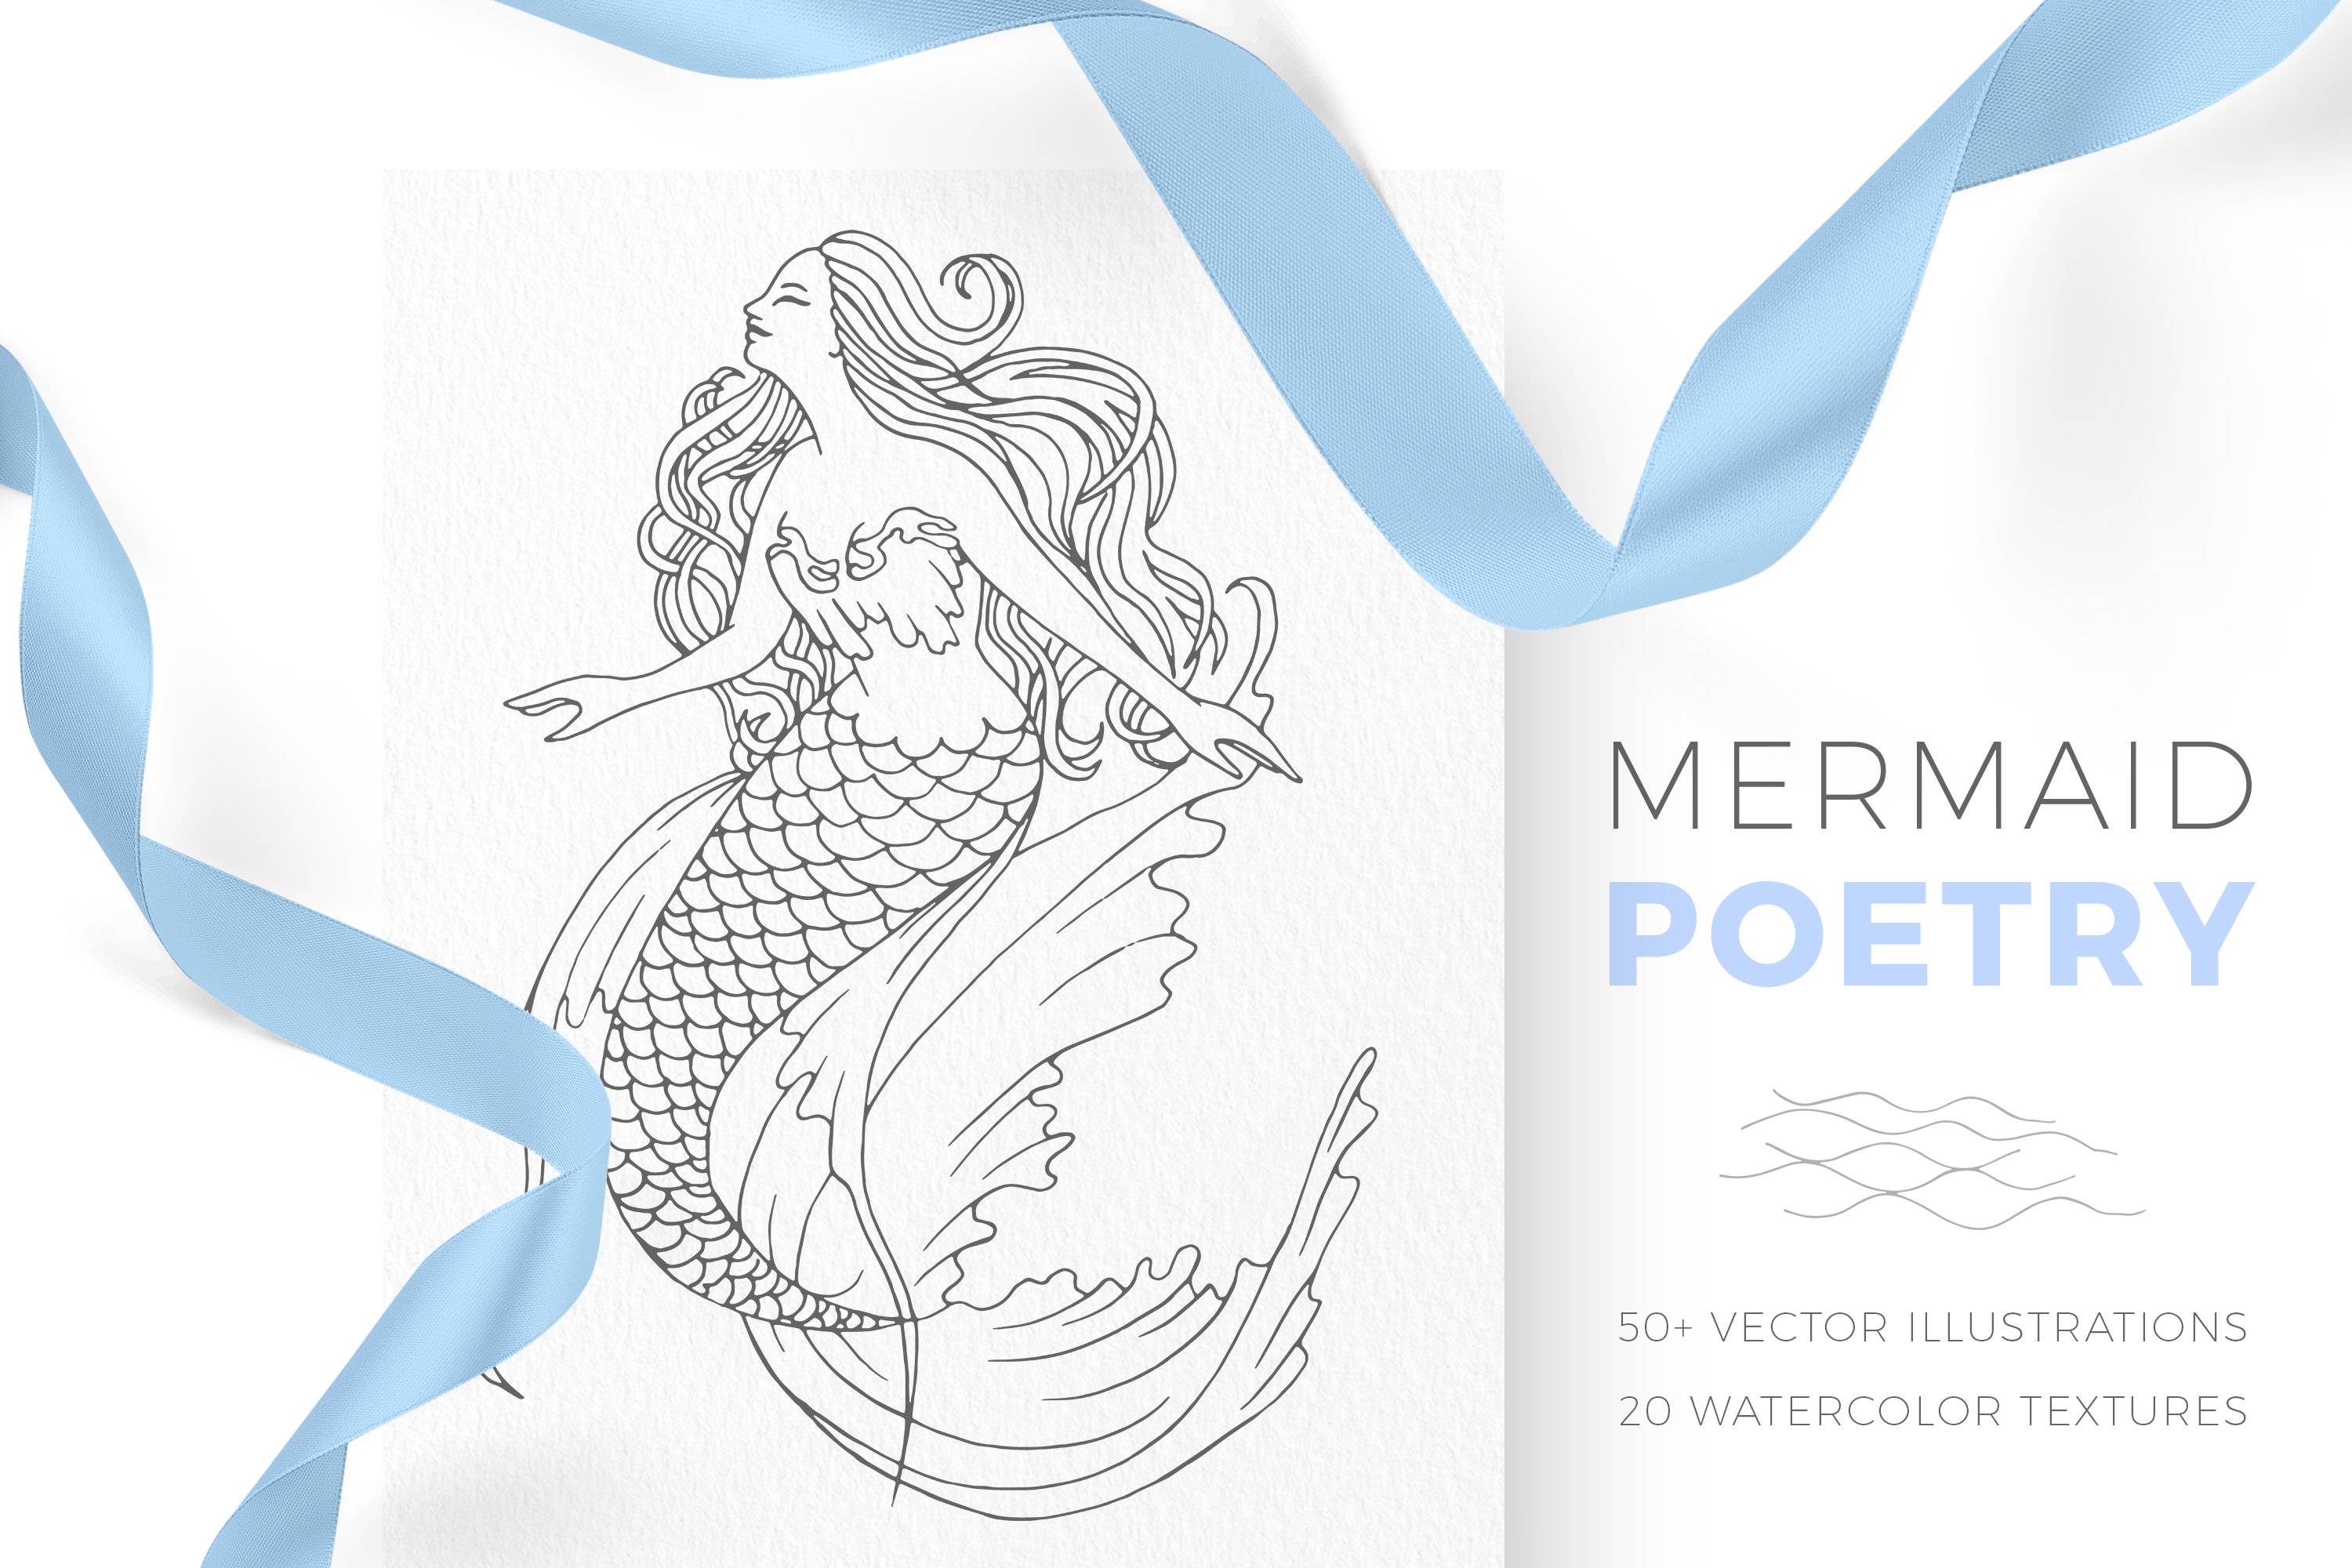 Mermaid Poetry Lineart Watercolor Graphic By Draw Wind Zen